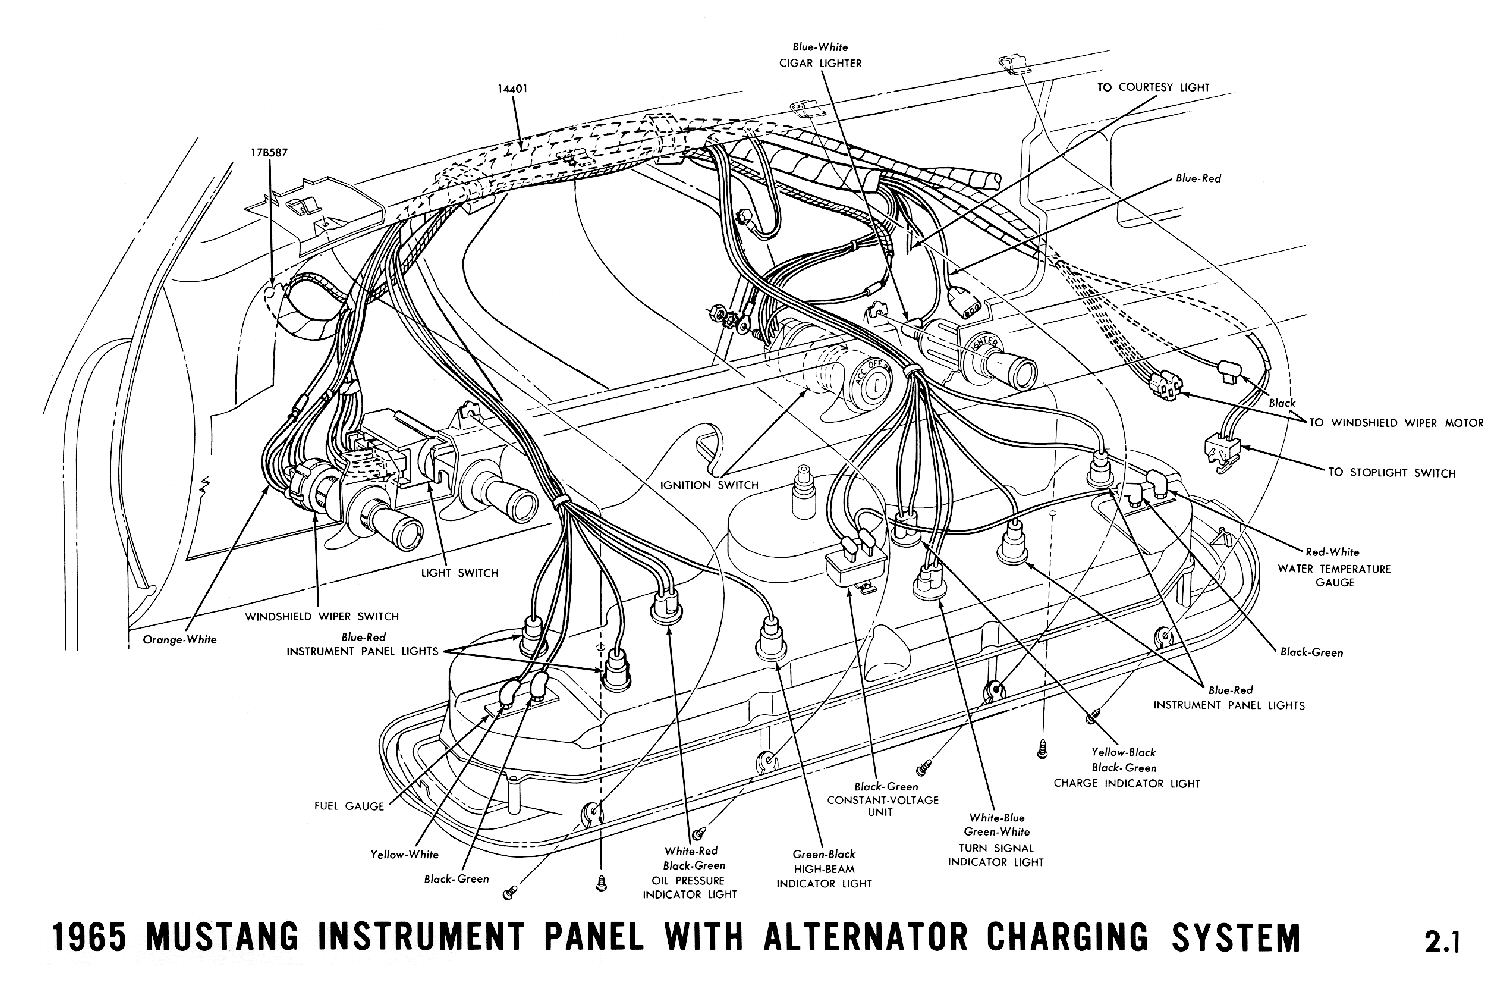 1965a 1965 mustang wiring diagrams average joe restoration  at soozxer.org